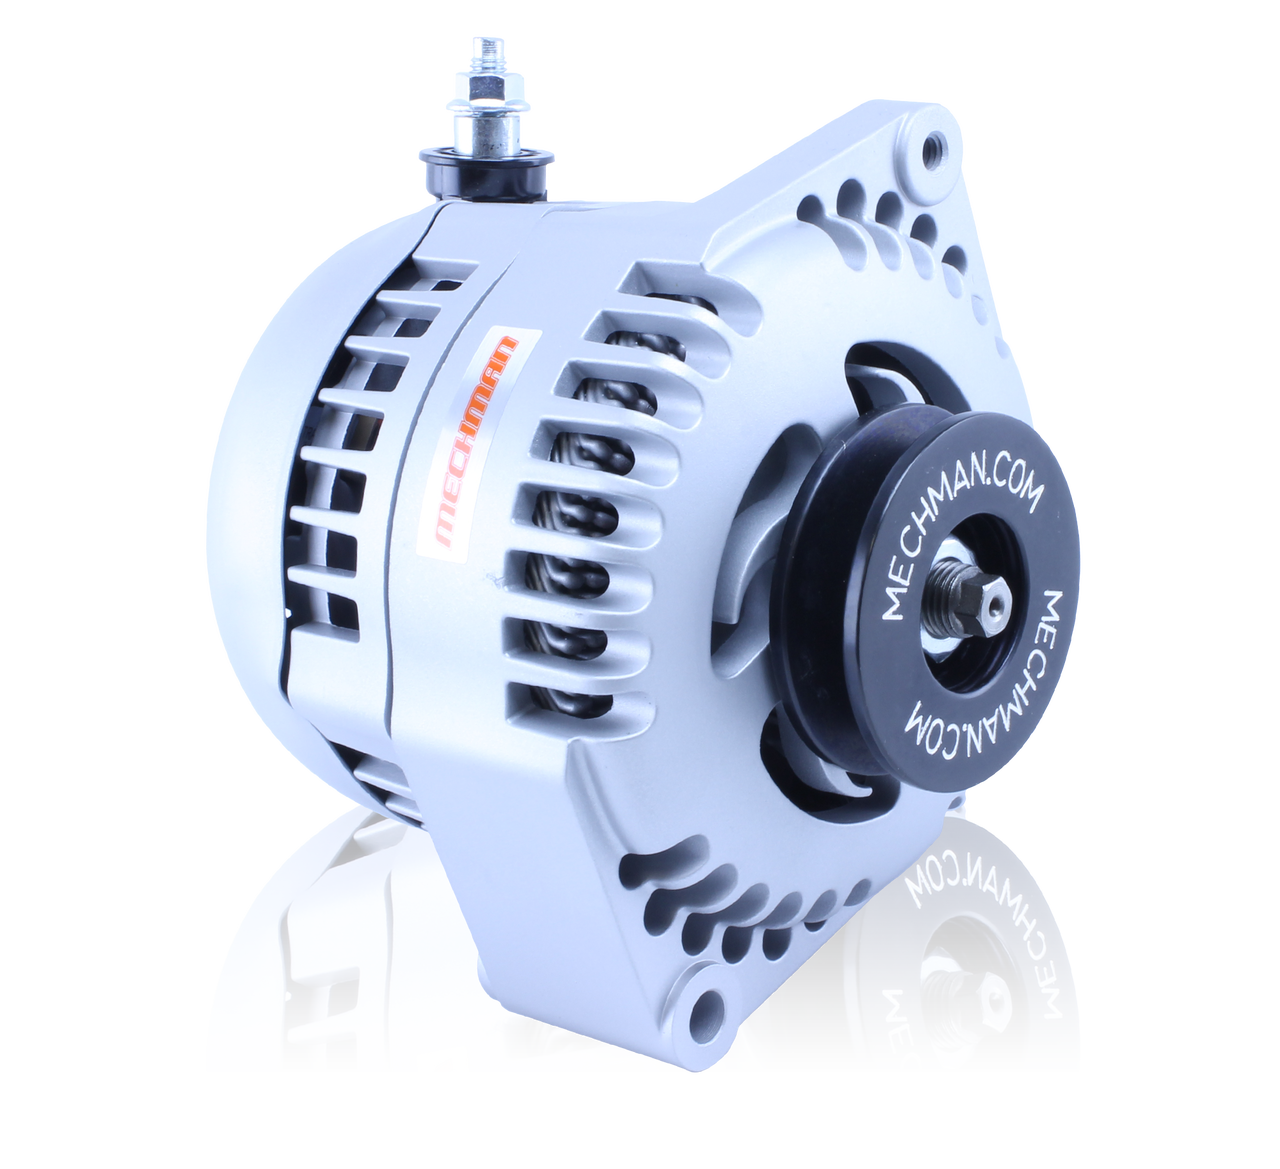 S Series 170 amp Racing alternator for 63-85 GM - 1 wire